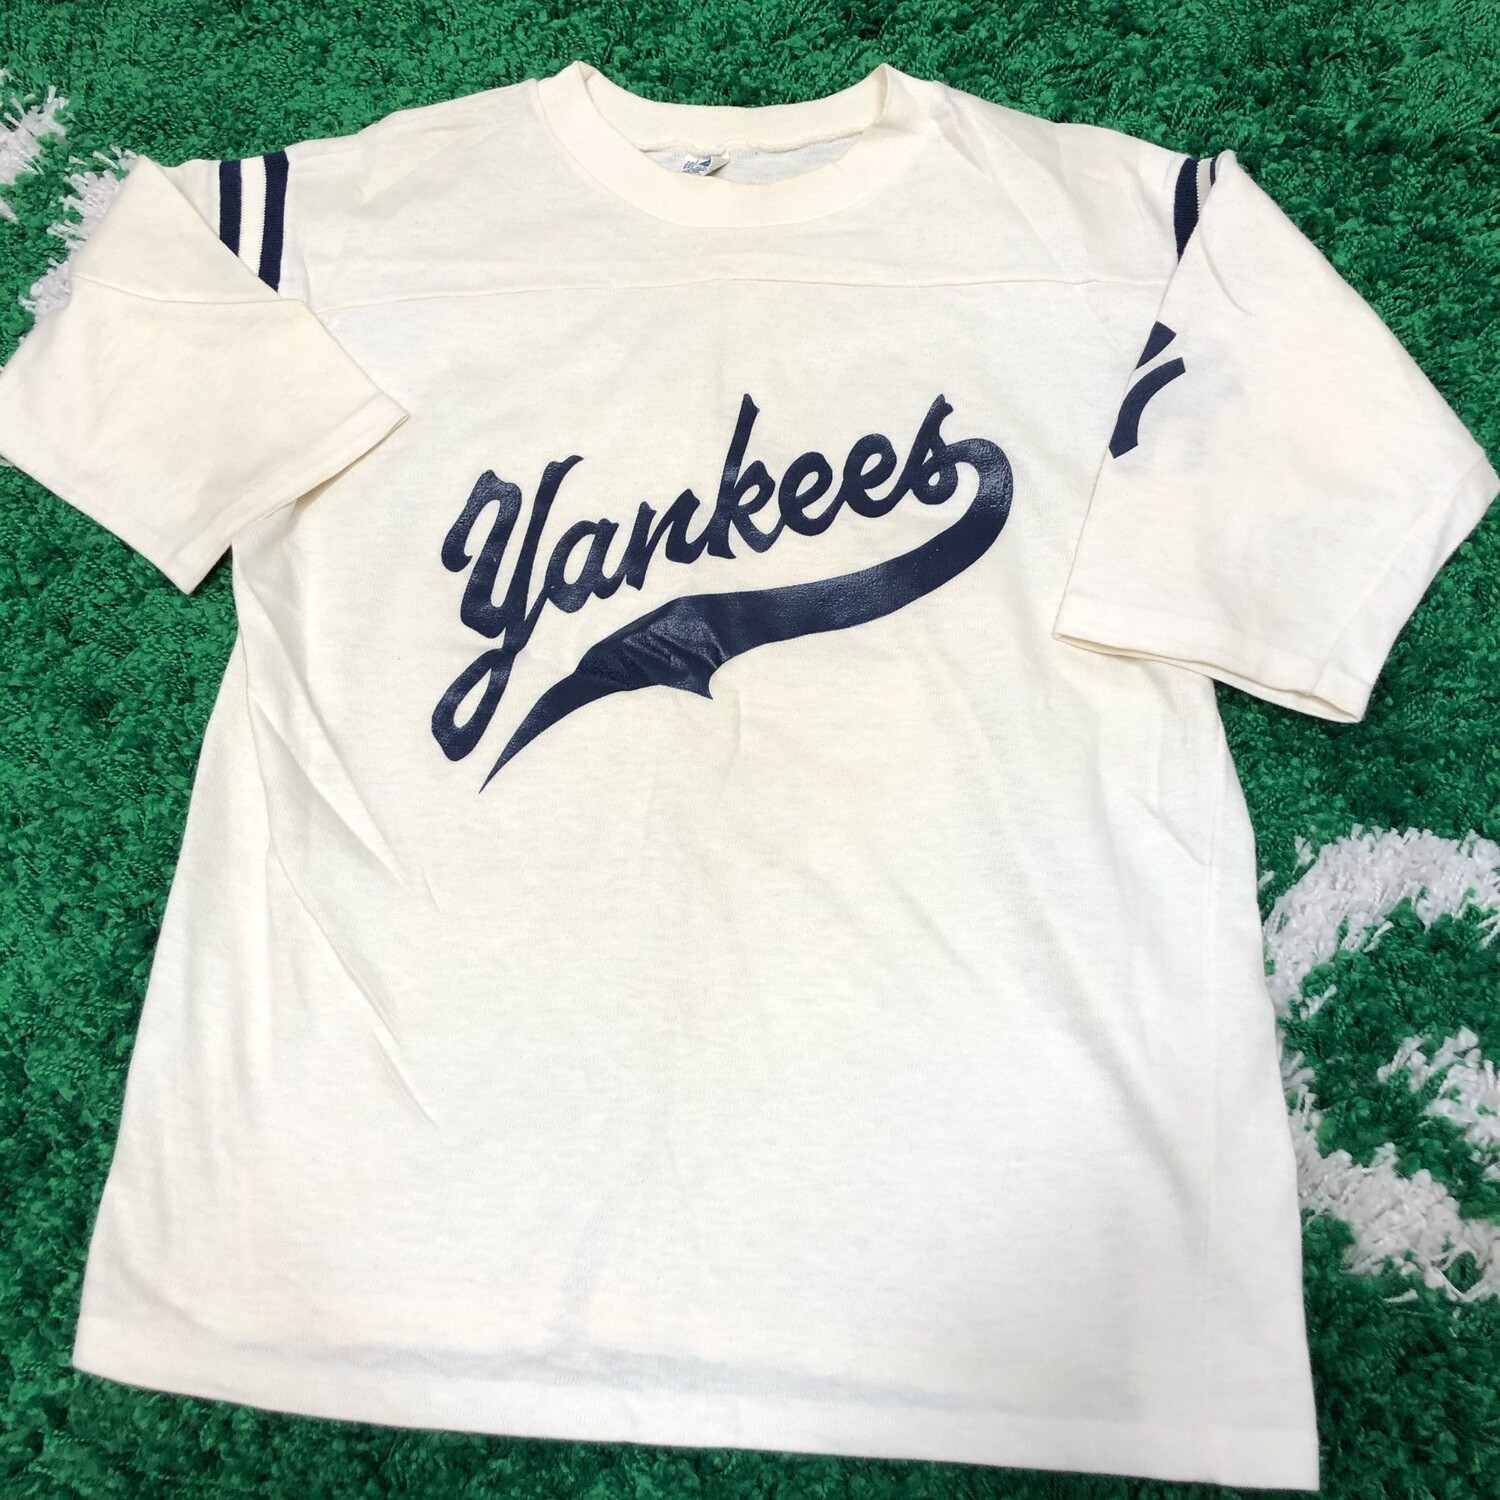 New York Yankees Jersey White Size Small